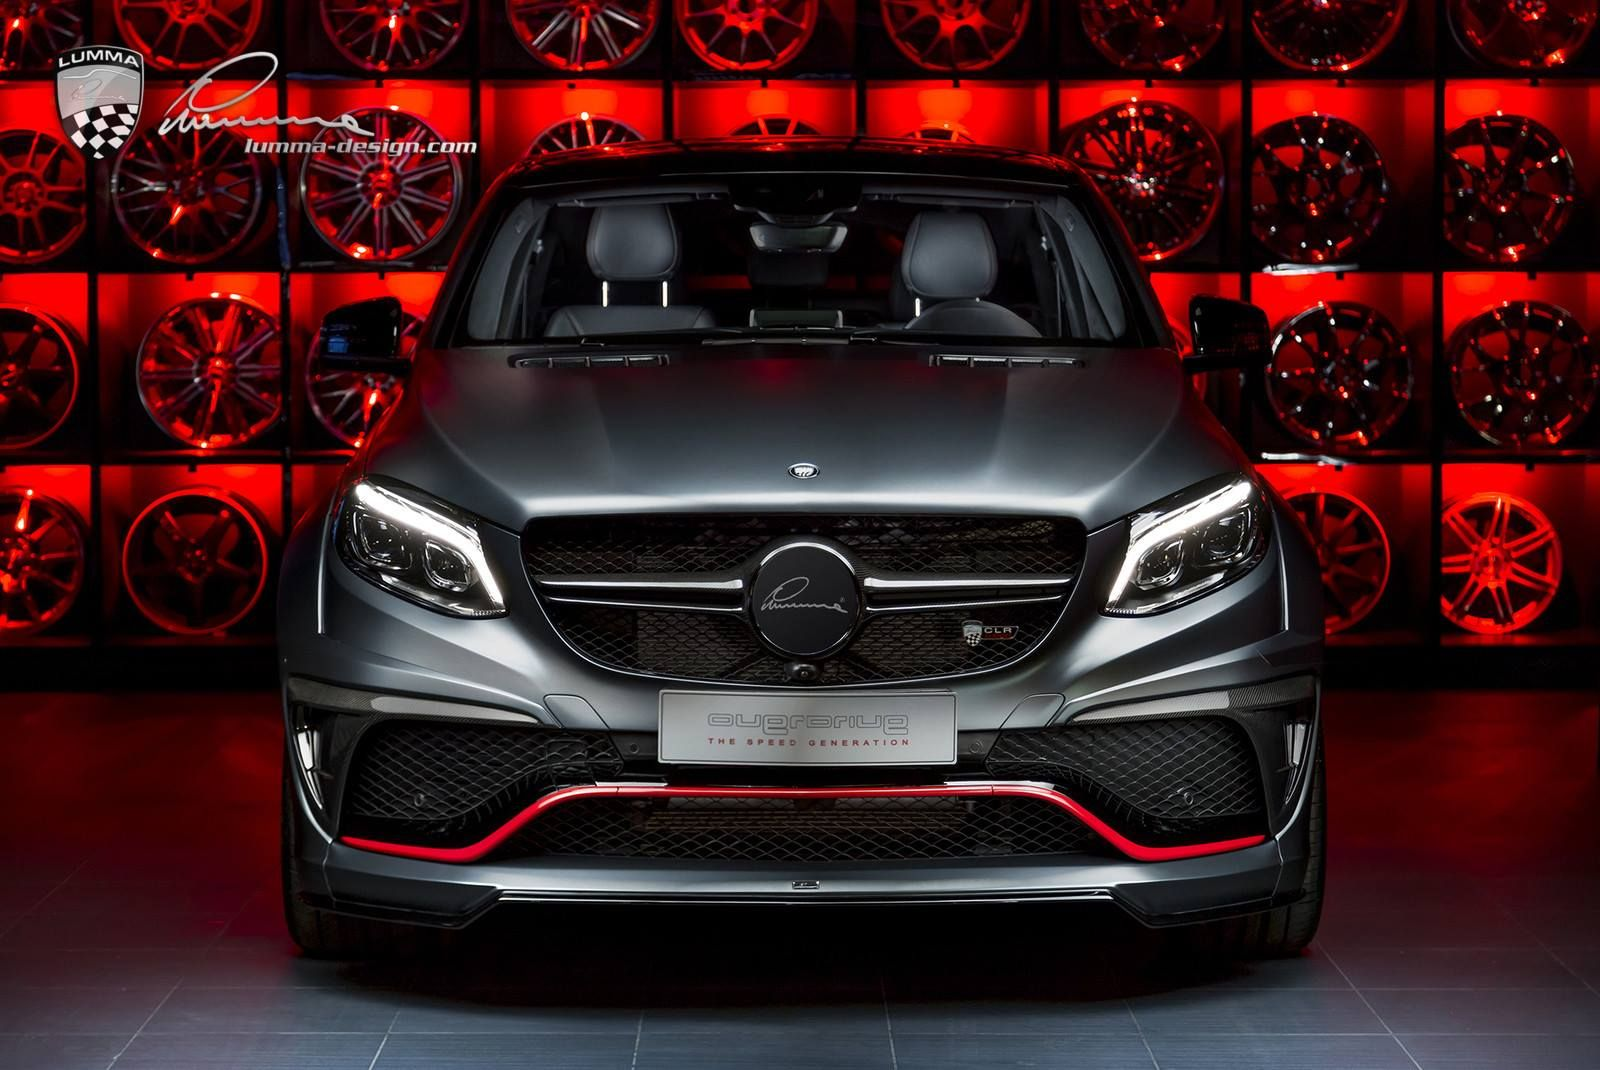 Lumma S Clr G800 Is A Mercedes Benz Gle Coupe On Steroids